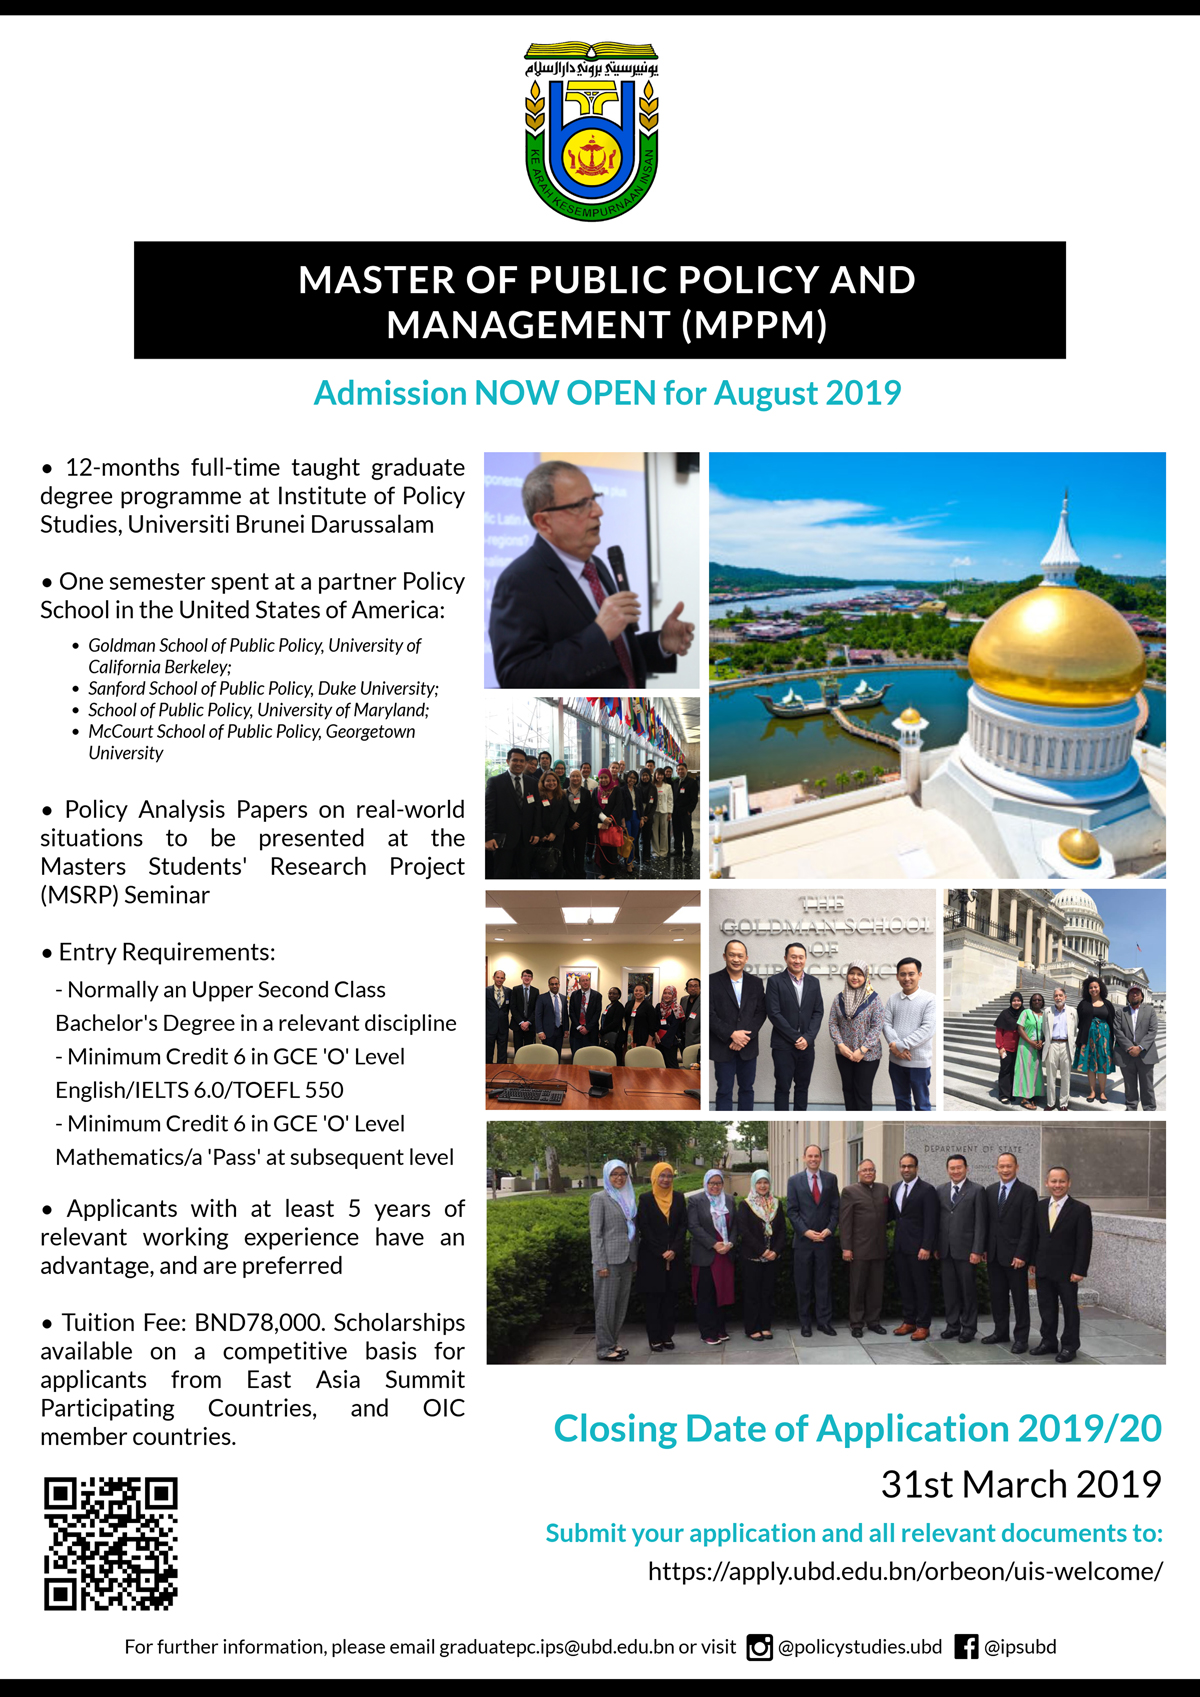 For More Information On Master Of Public Policy And Management Please Click